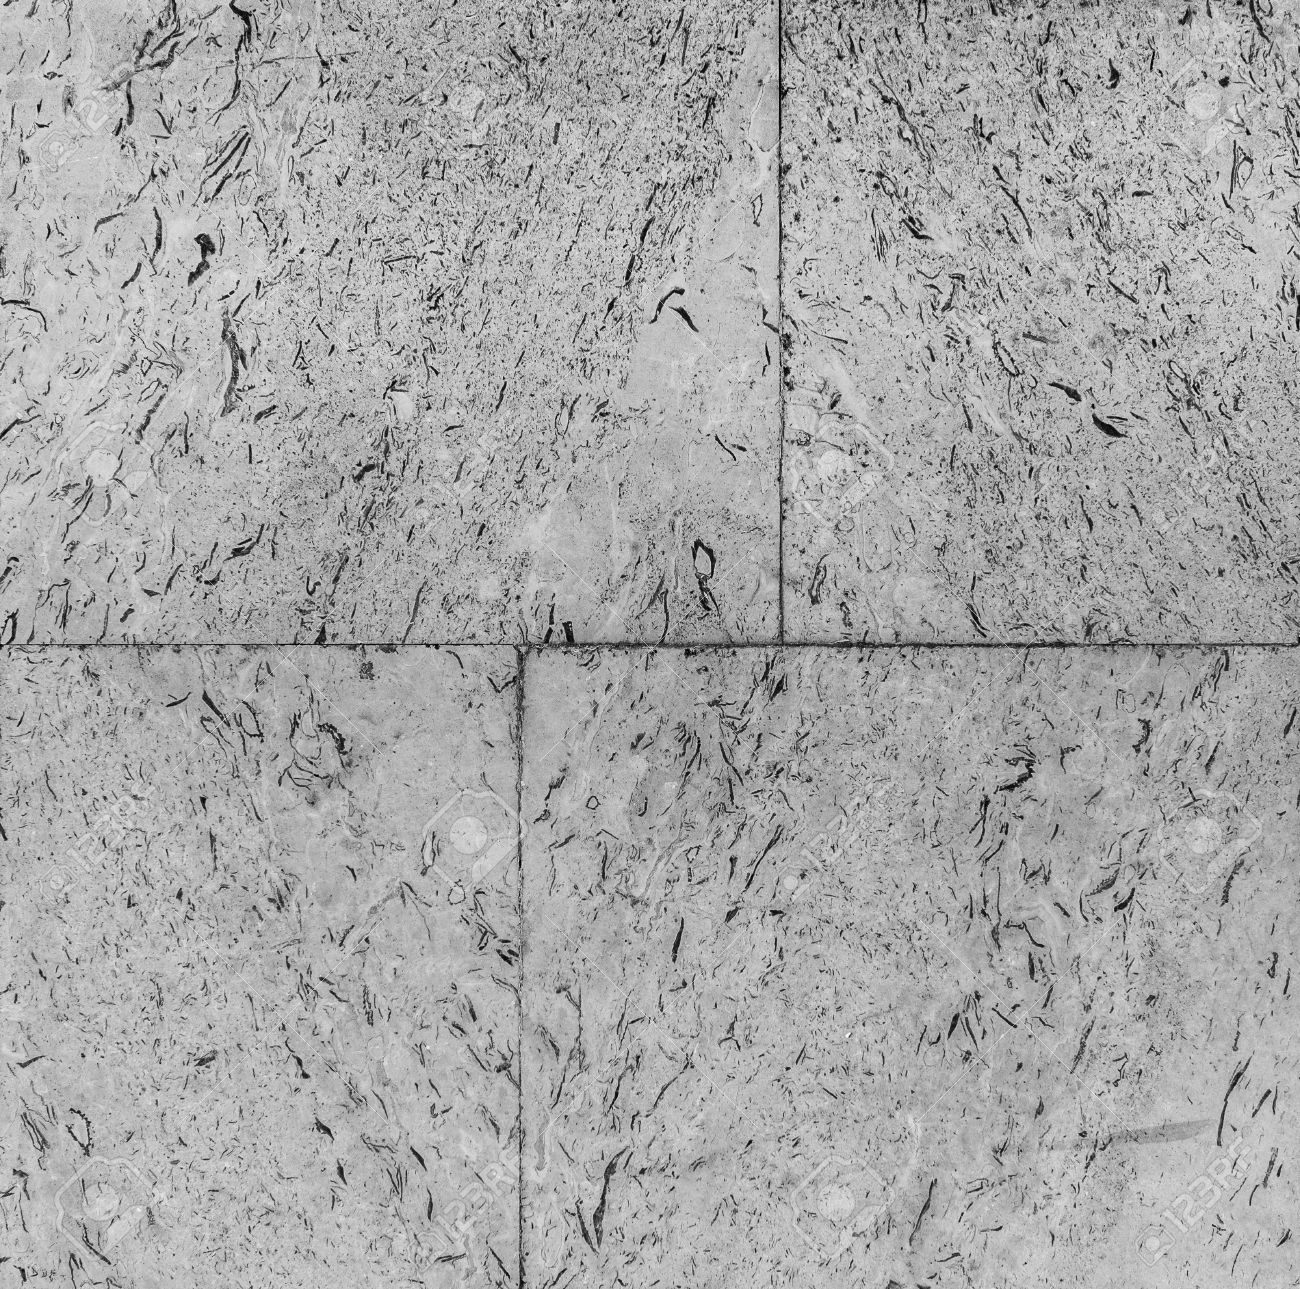 Marble Or Granite Floor Slabs For Outside Pavement Flooring. Natural Gray  Pavement Stone Texture For